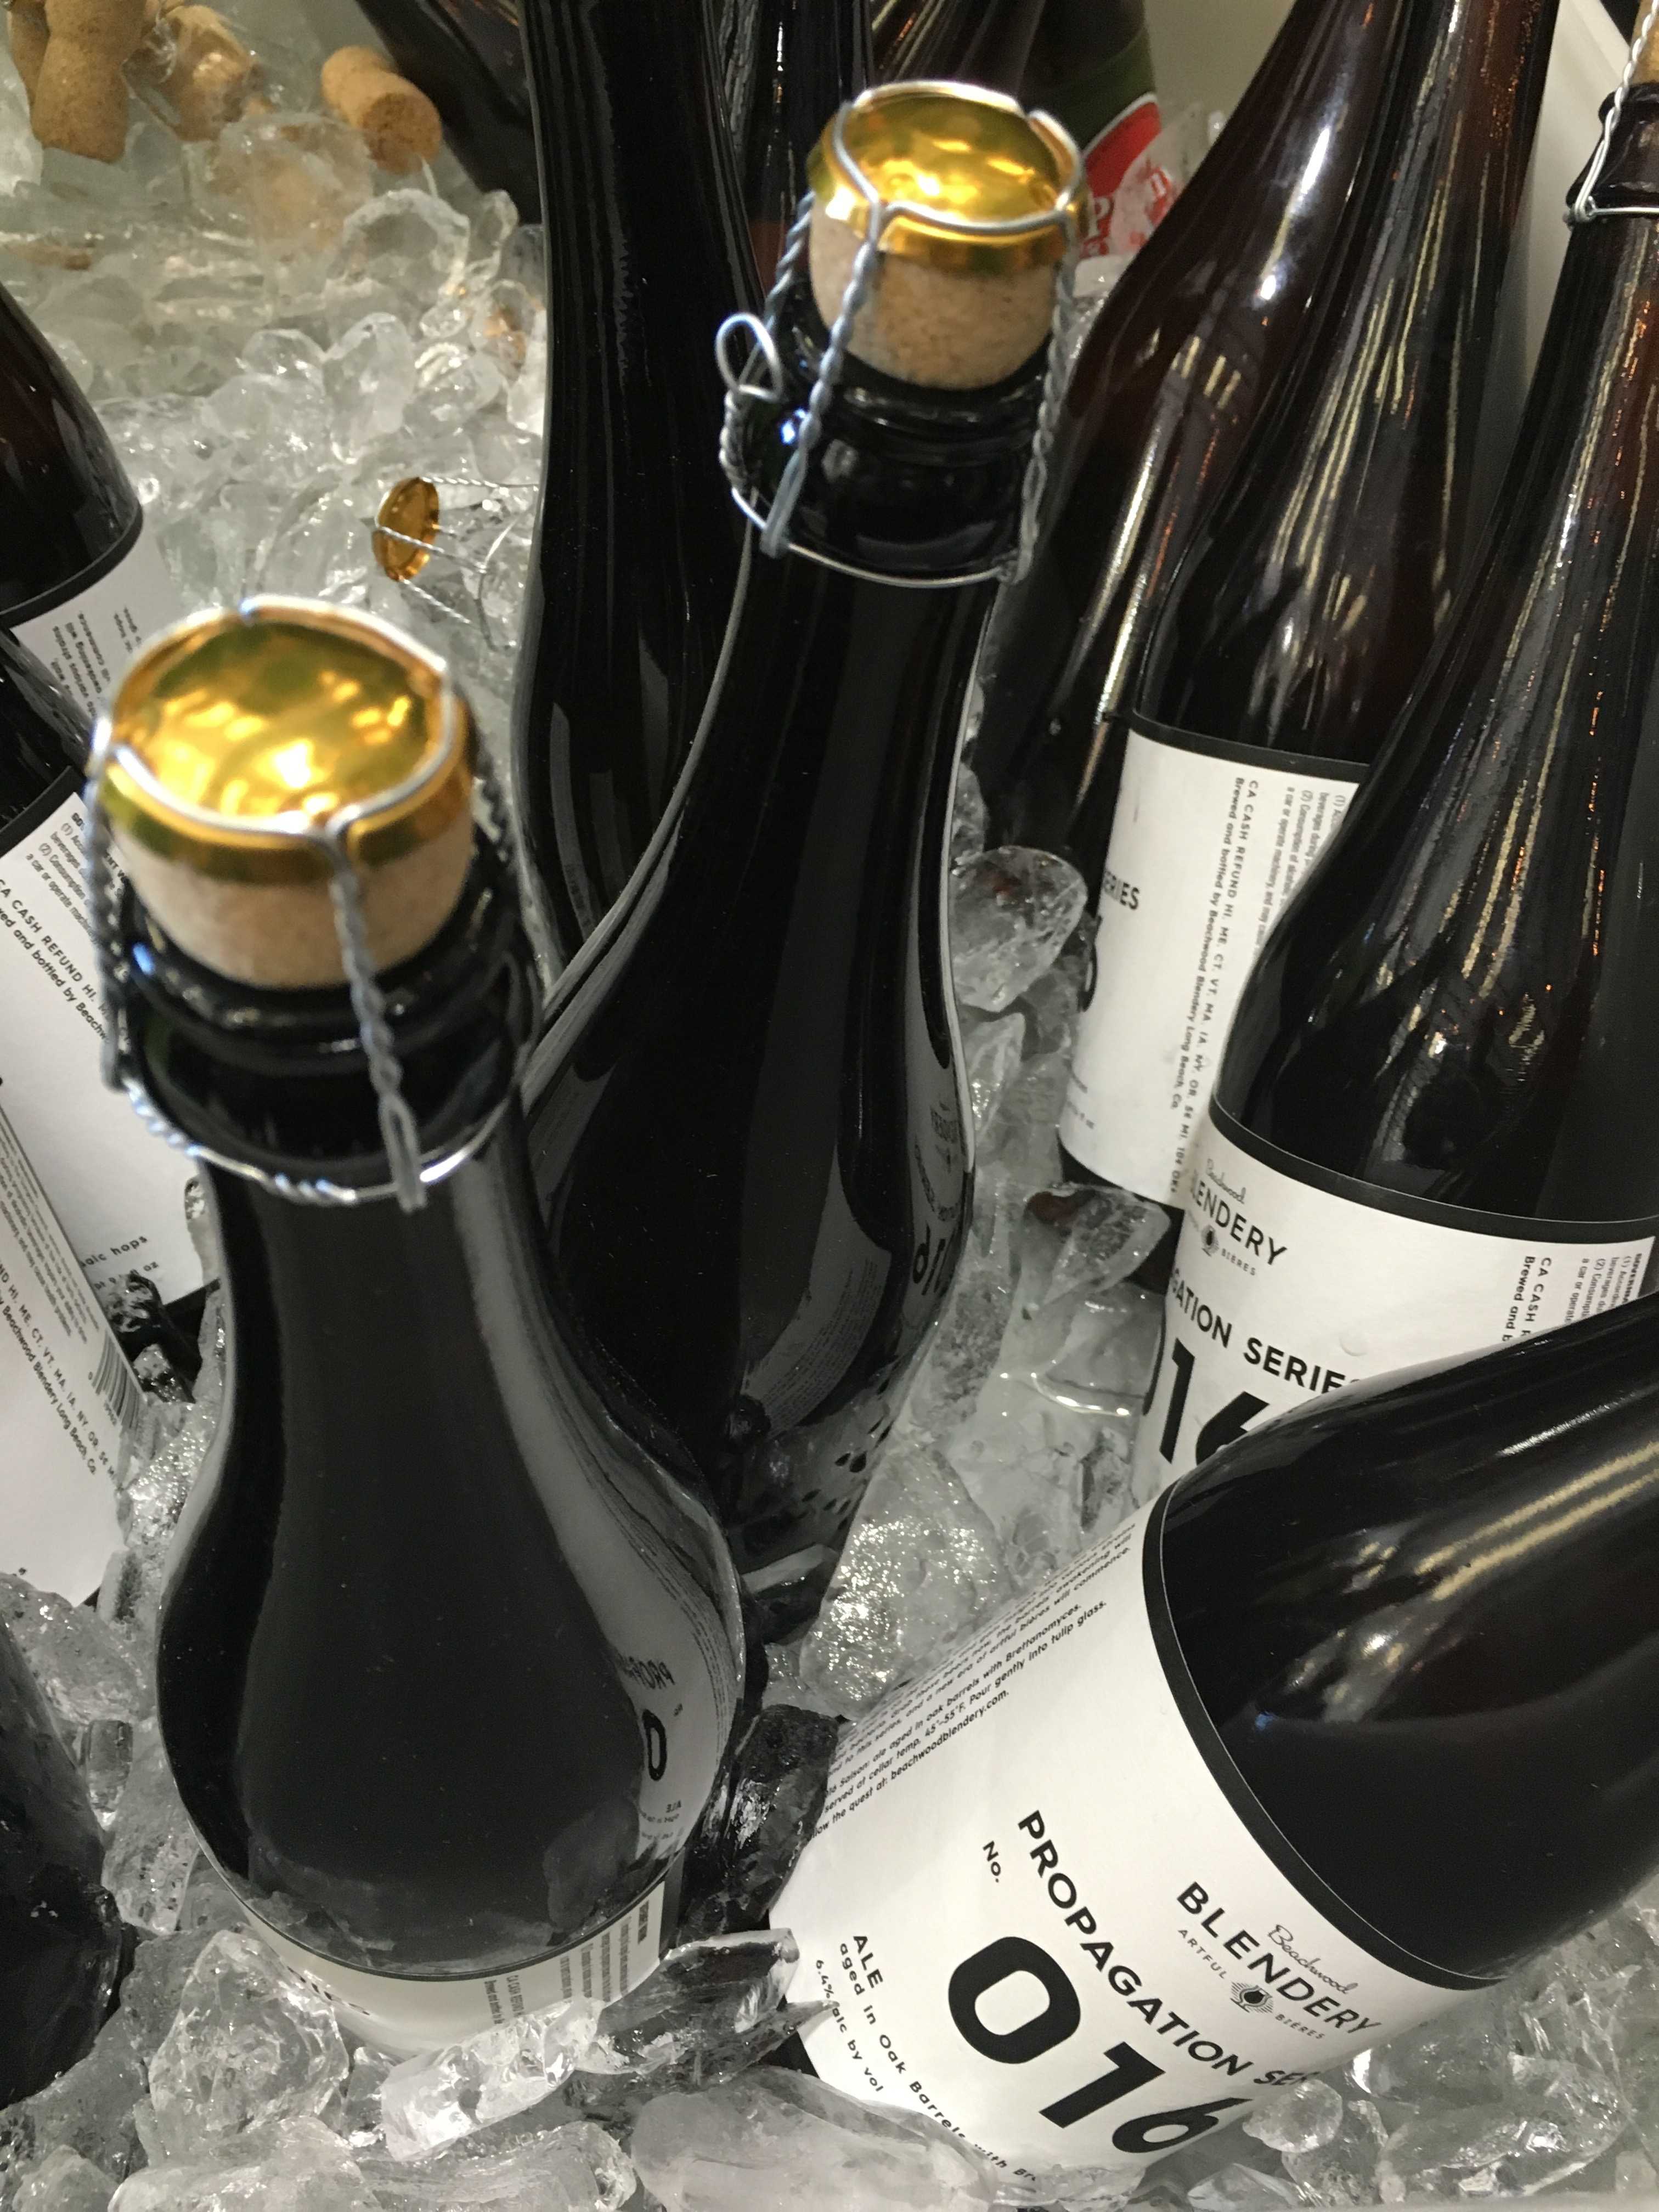 Bottles of Beachwood Blendery at 2016 RateBeer Best Festival.